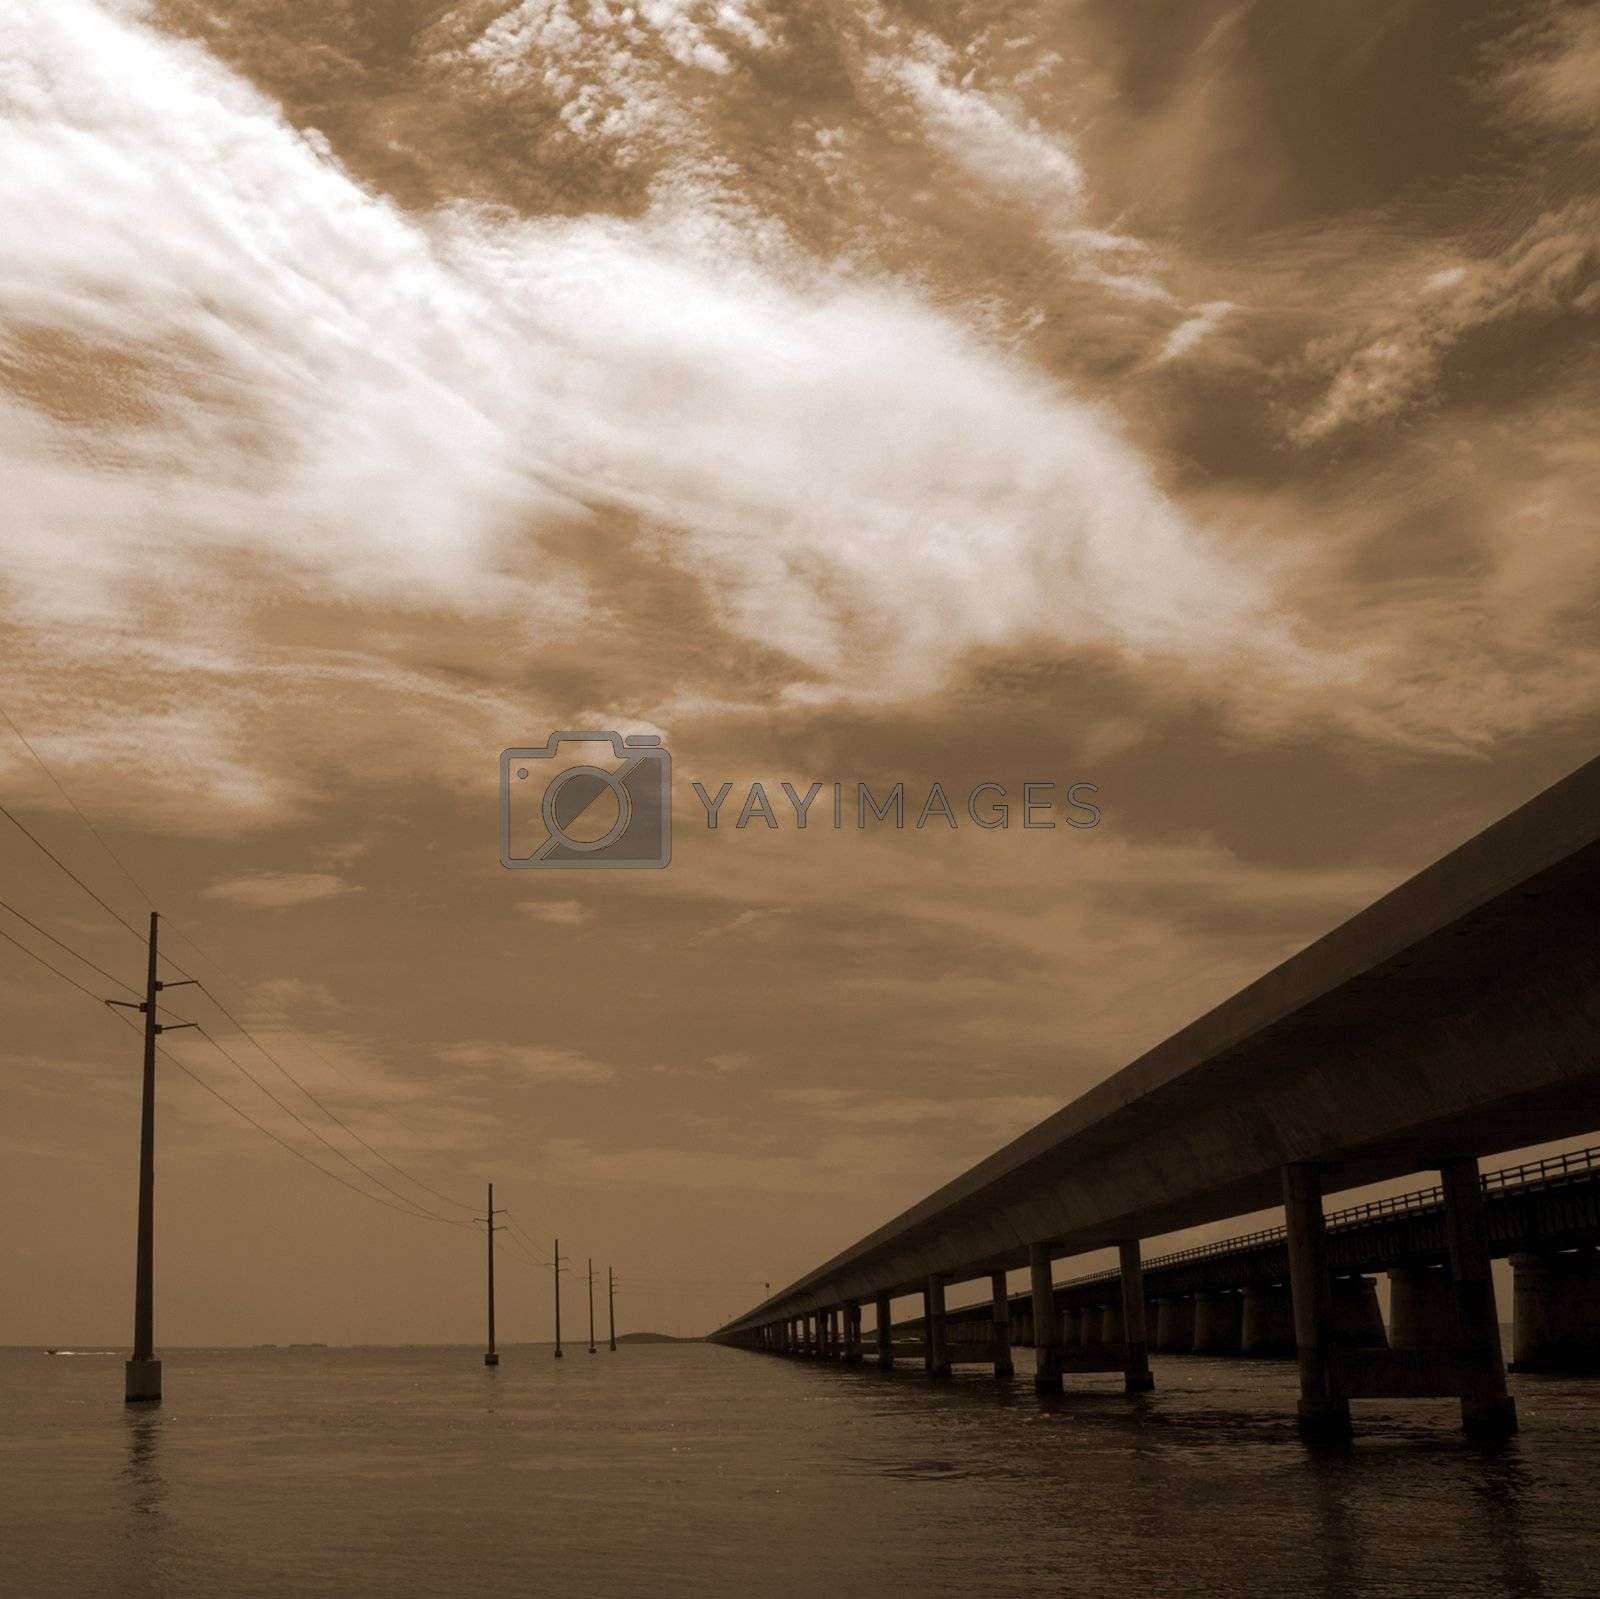 Seven Mile Bridge in the Florida Keys, Florida